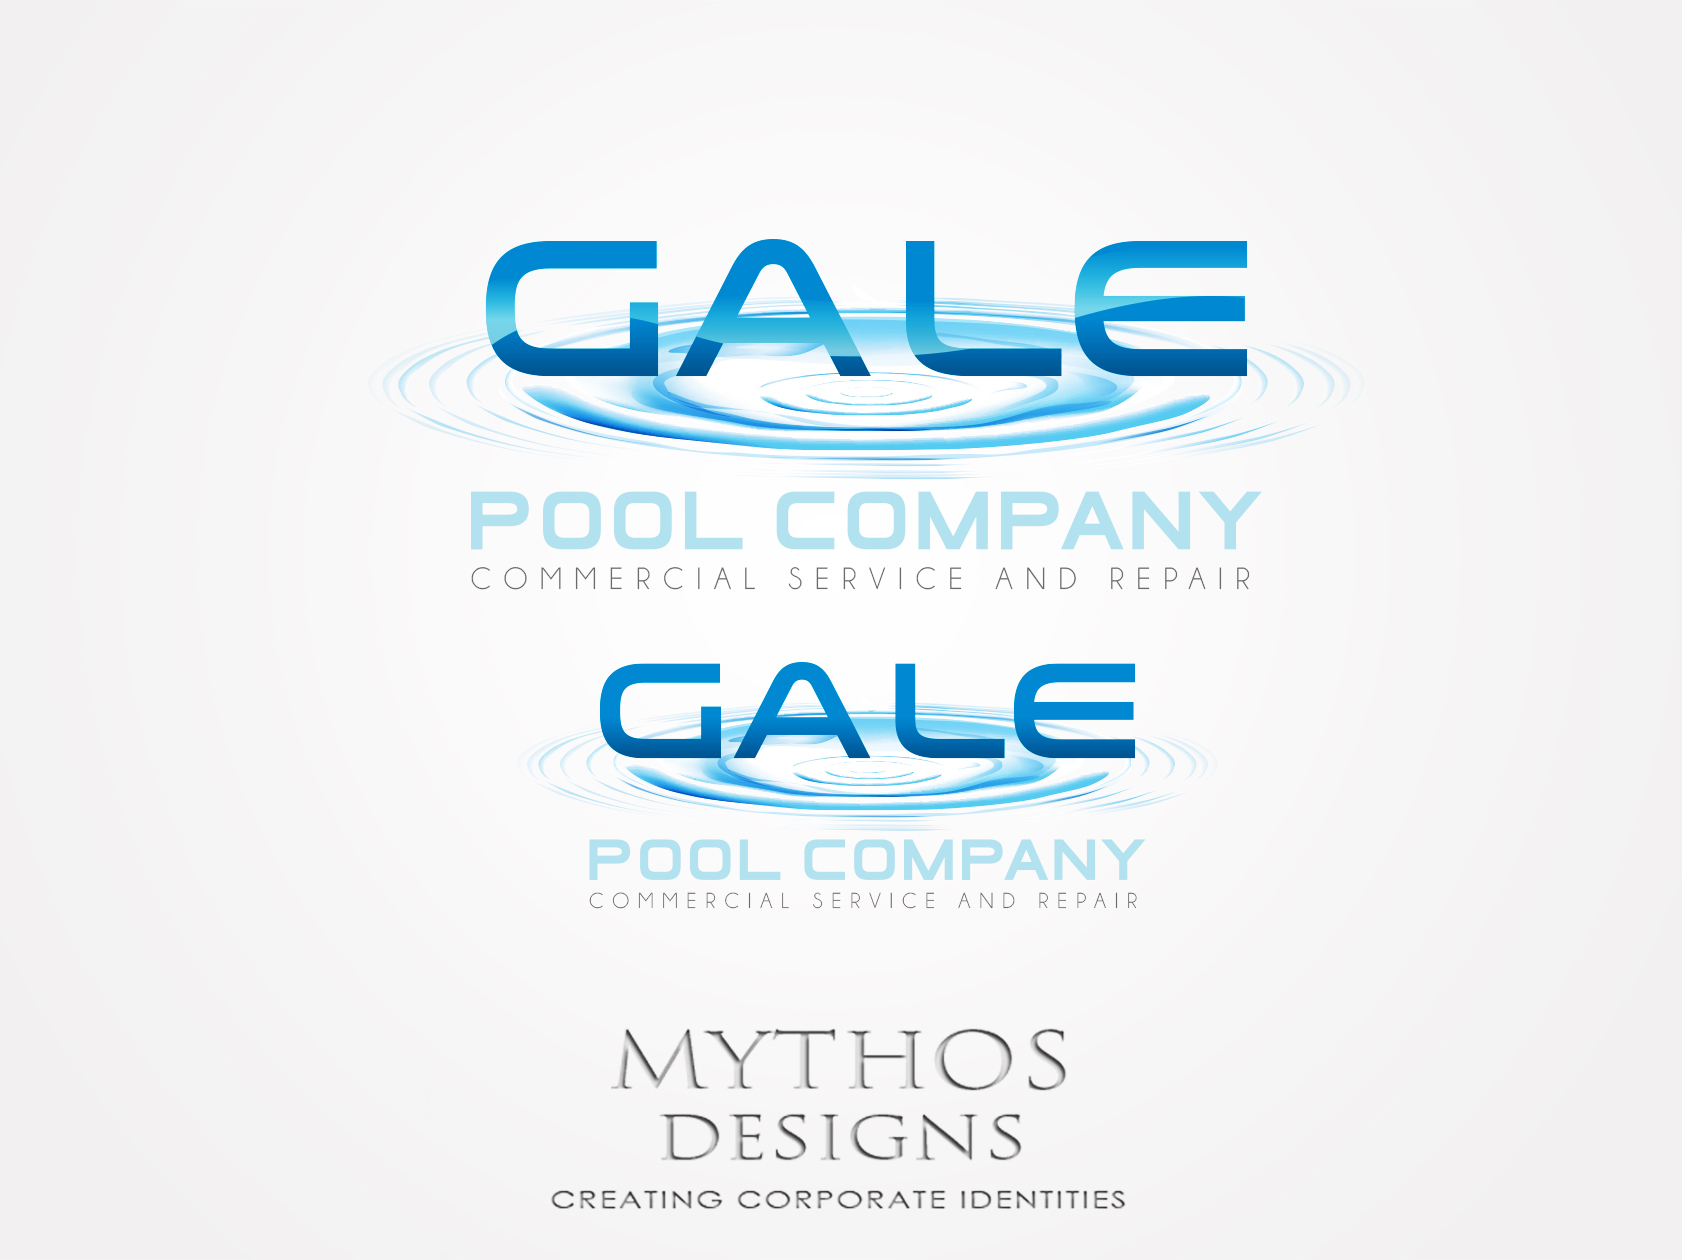 Logo Design by Mythos Designs - Entry No. 156 in the Logo Design Contest Imaginative Logo Design for Gale Pool Company.